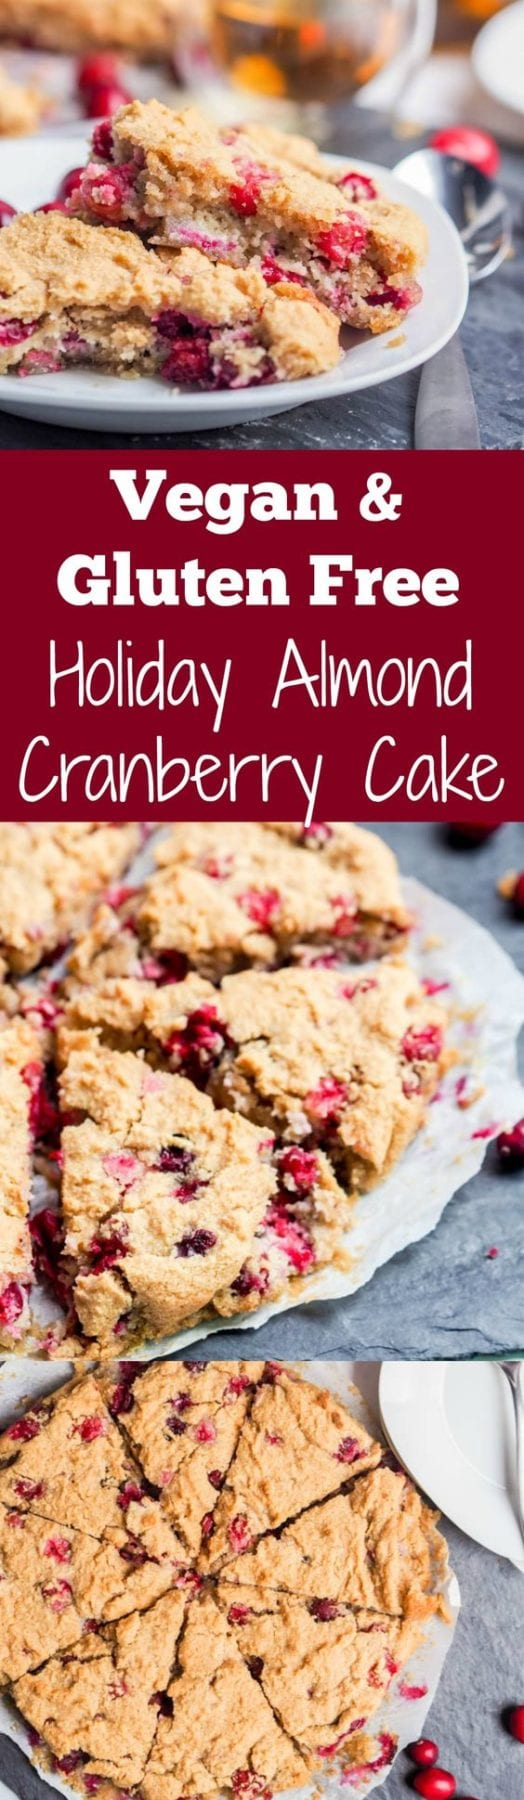 5 ingredient vegan and gluten free HOLIDAY almond cake with cranberries and aquafaba in place of egg whites for a light and fluffy fall and winter cake. Refined Sugar Free & High Protein (9 grams of protein per slice) too. | avocadopesto.com #ad @Bob's Red Mill #BobsHolidayCheer #cake #vegan #dessert #holidays